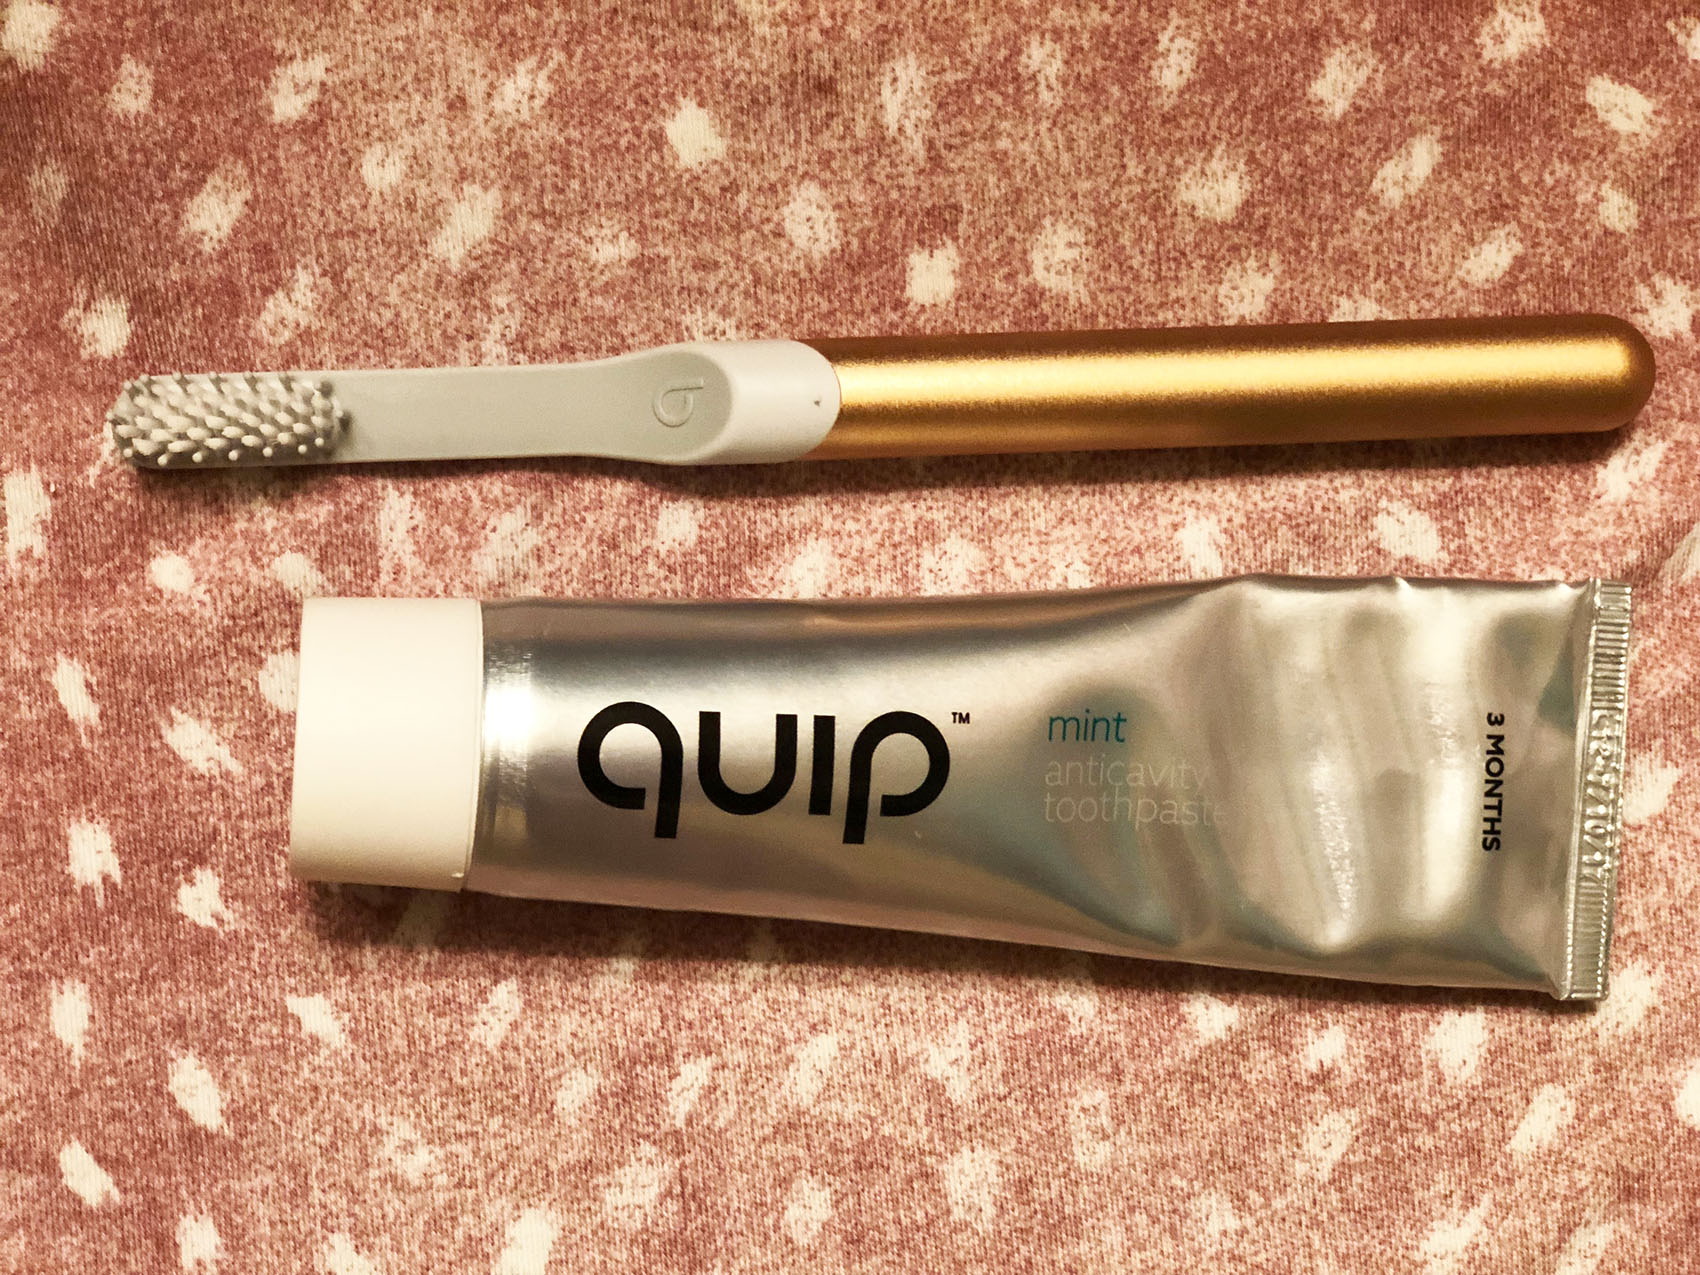 Quip toothbrush and toothpaste